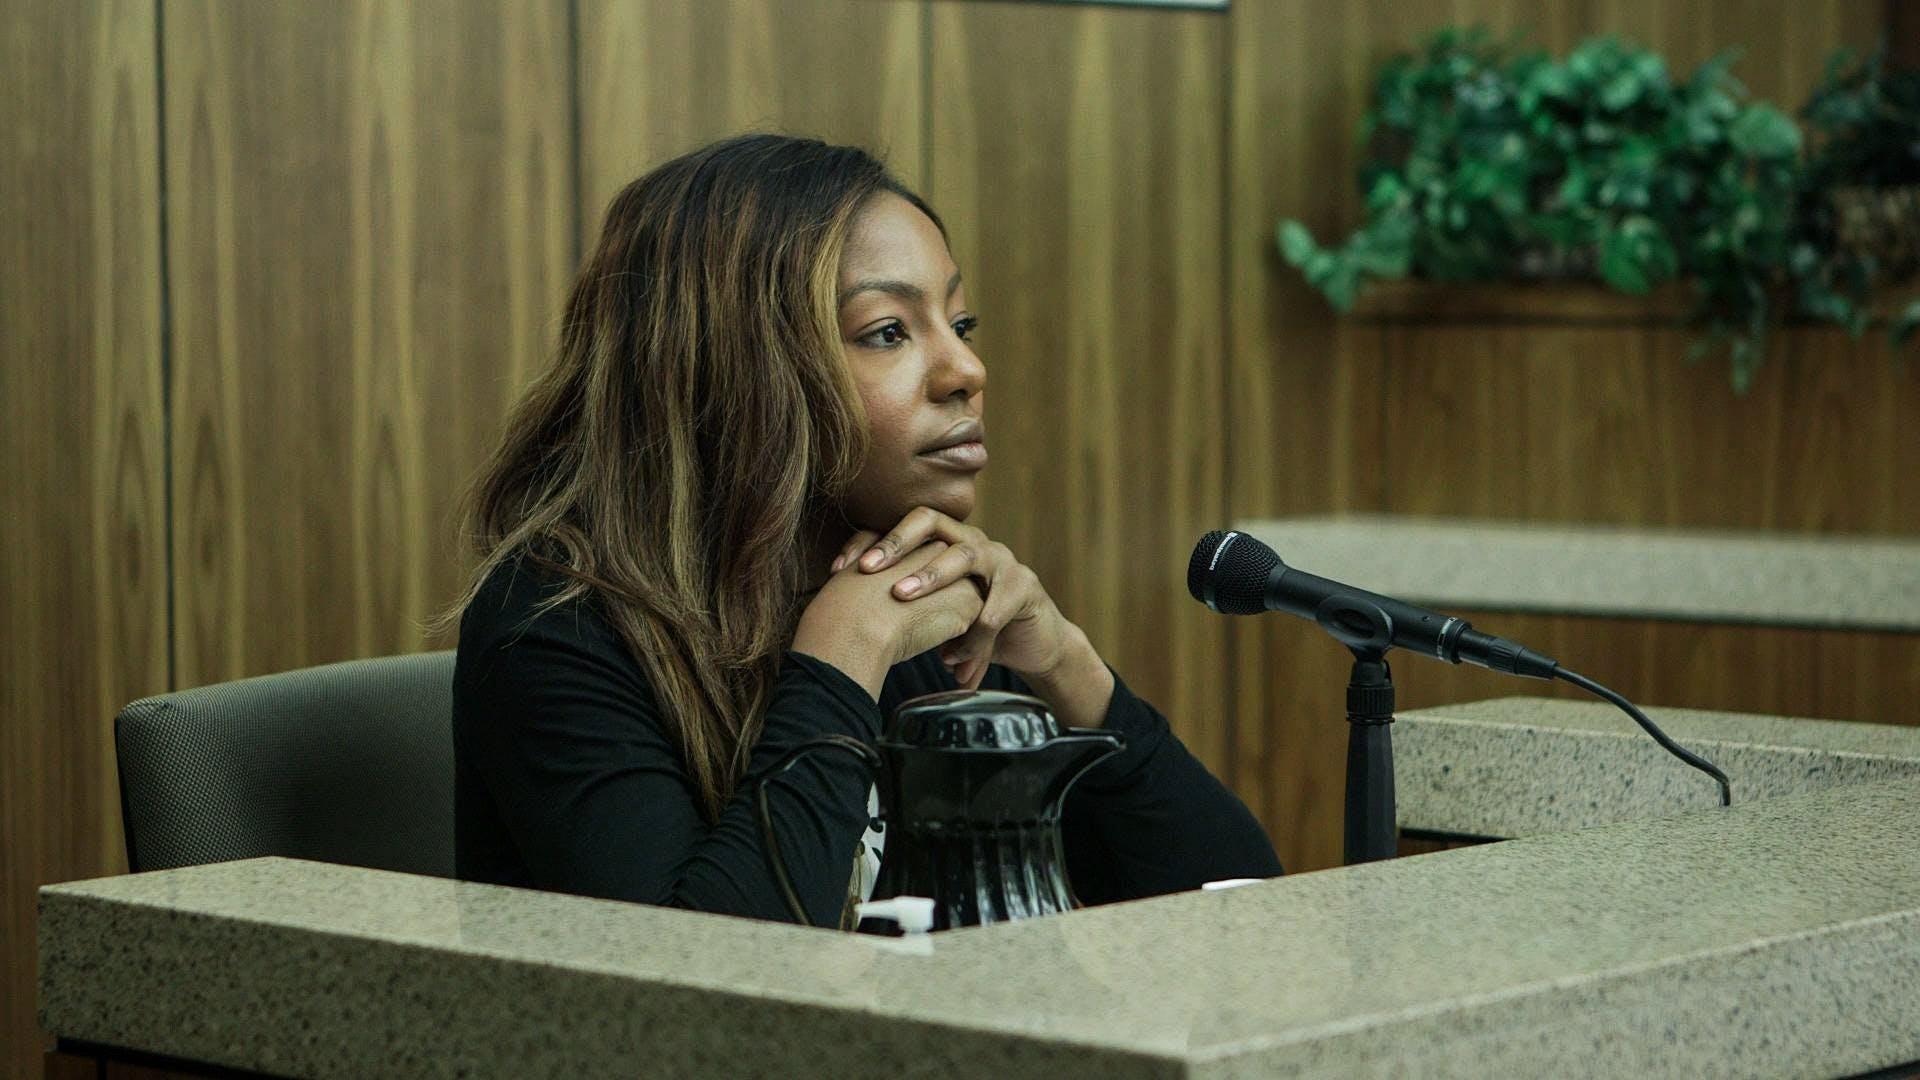 Charlo Greene The United Nations just warned member states to keep recreational cannabis illegal